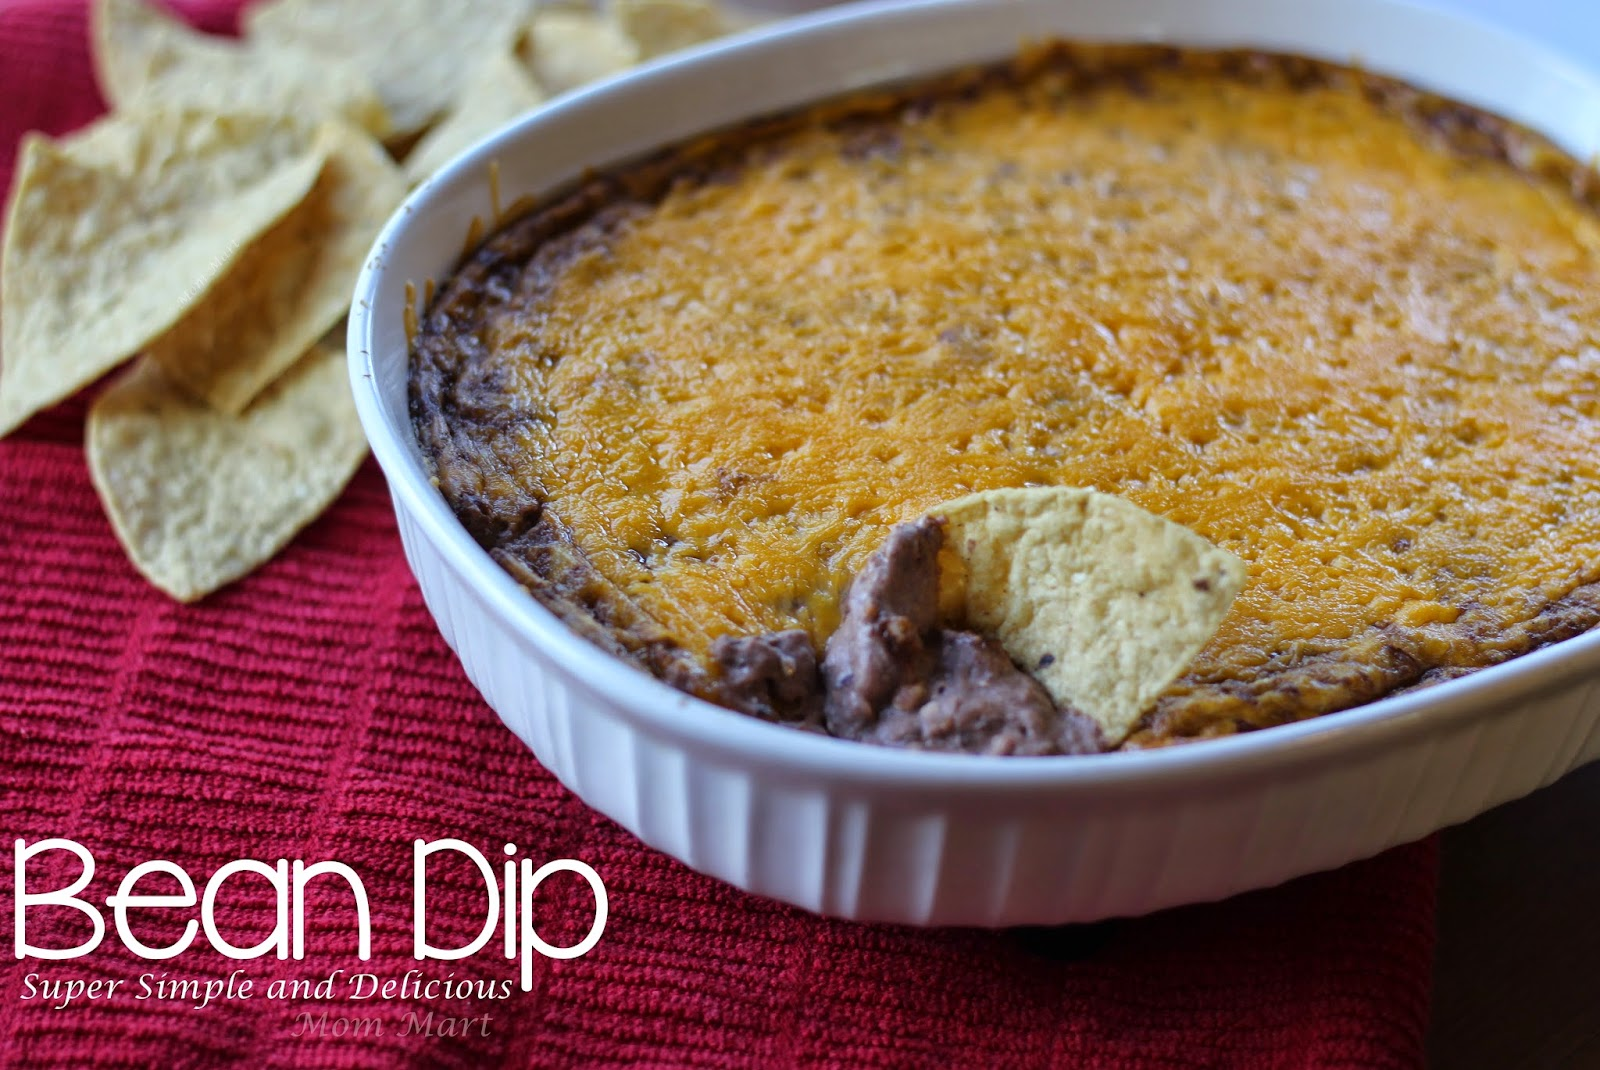 Bean Dip Recipe- Super Simple and Delicious #Recipe #Potluck #Appetizer